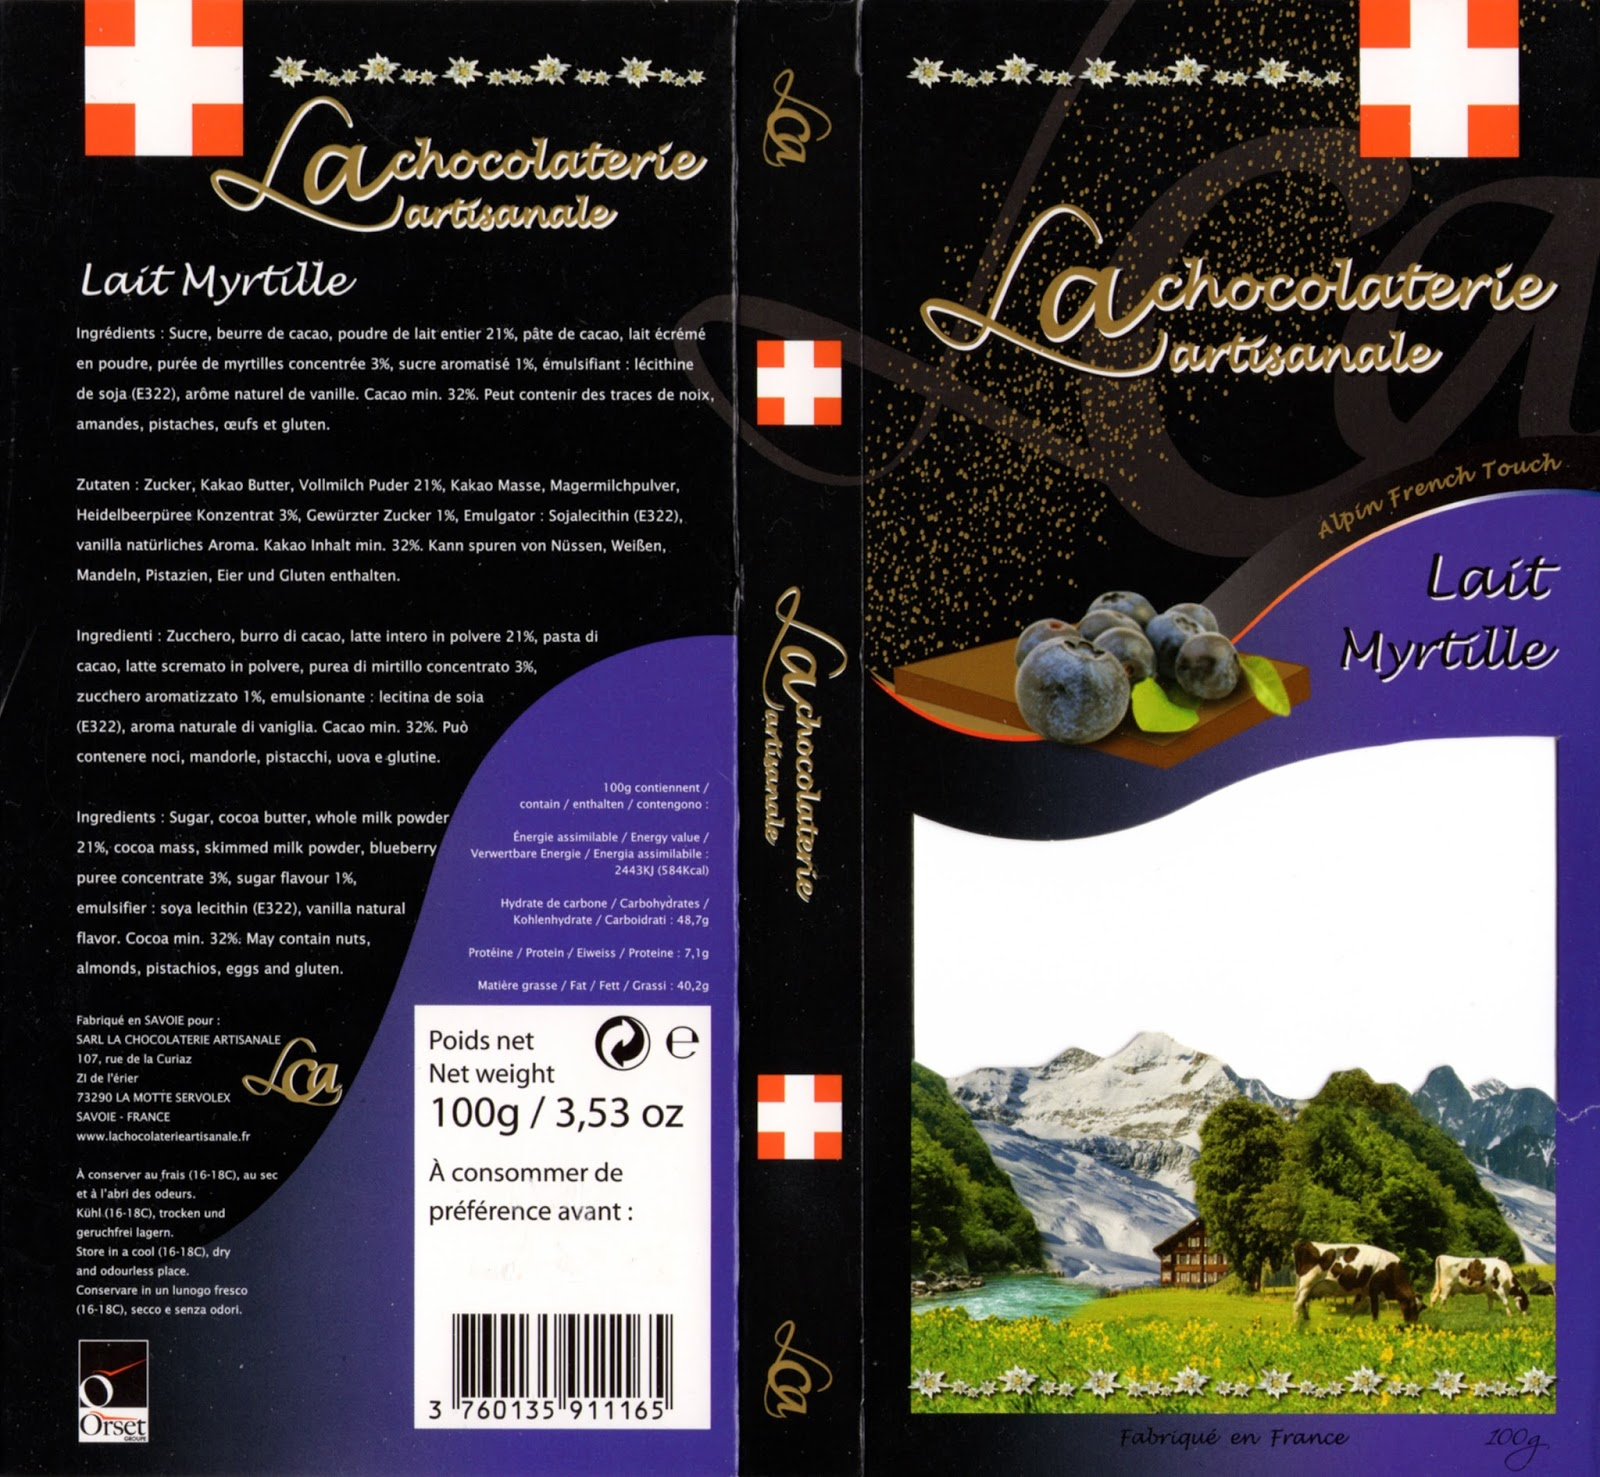 tablette de chocolat lait gourmand la chocolaterie artisanale lait myrtille